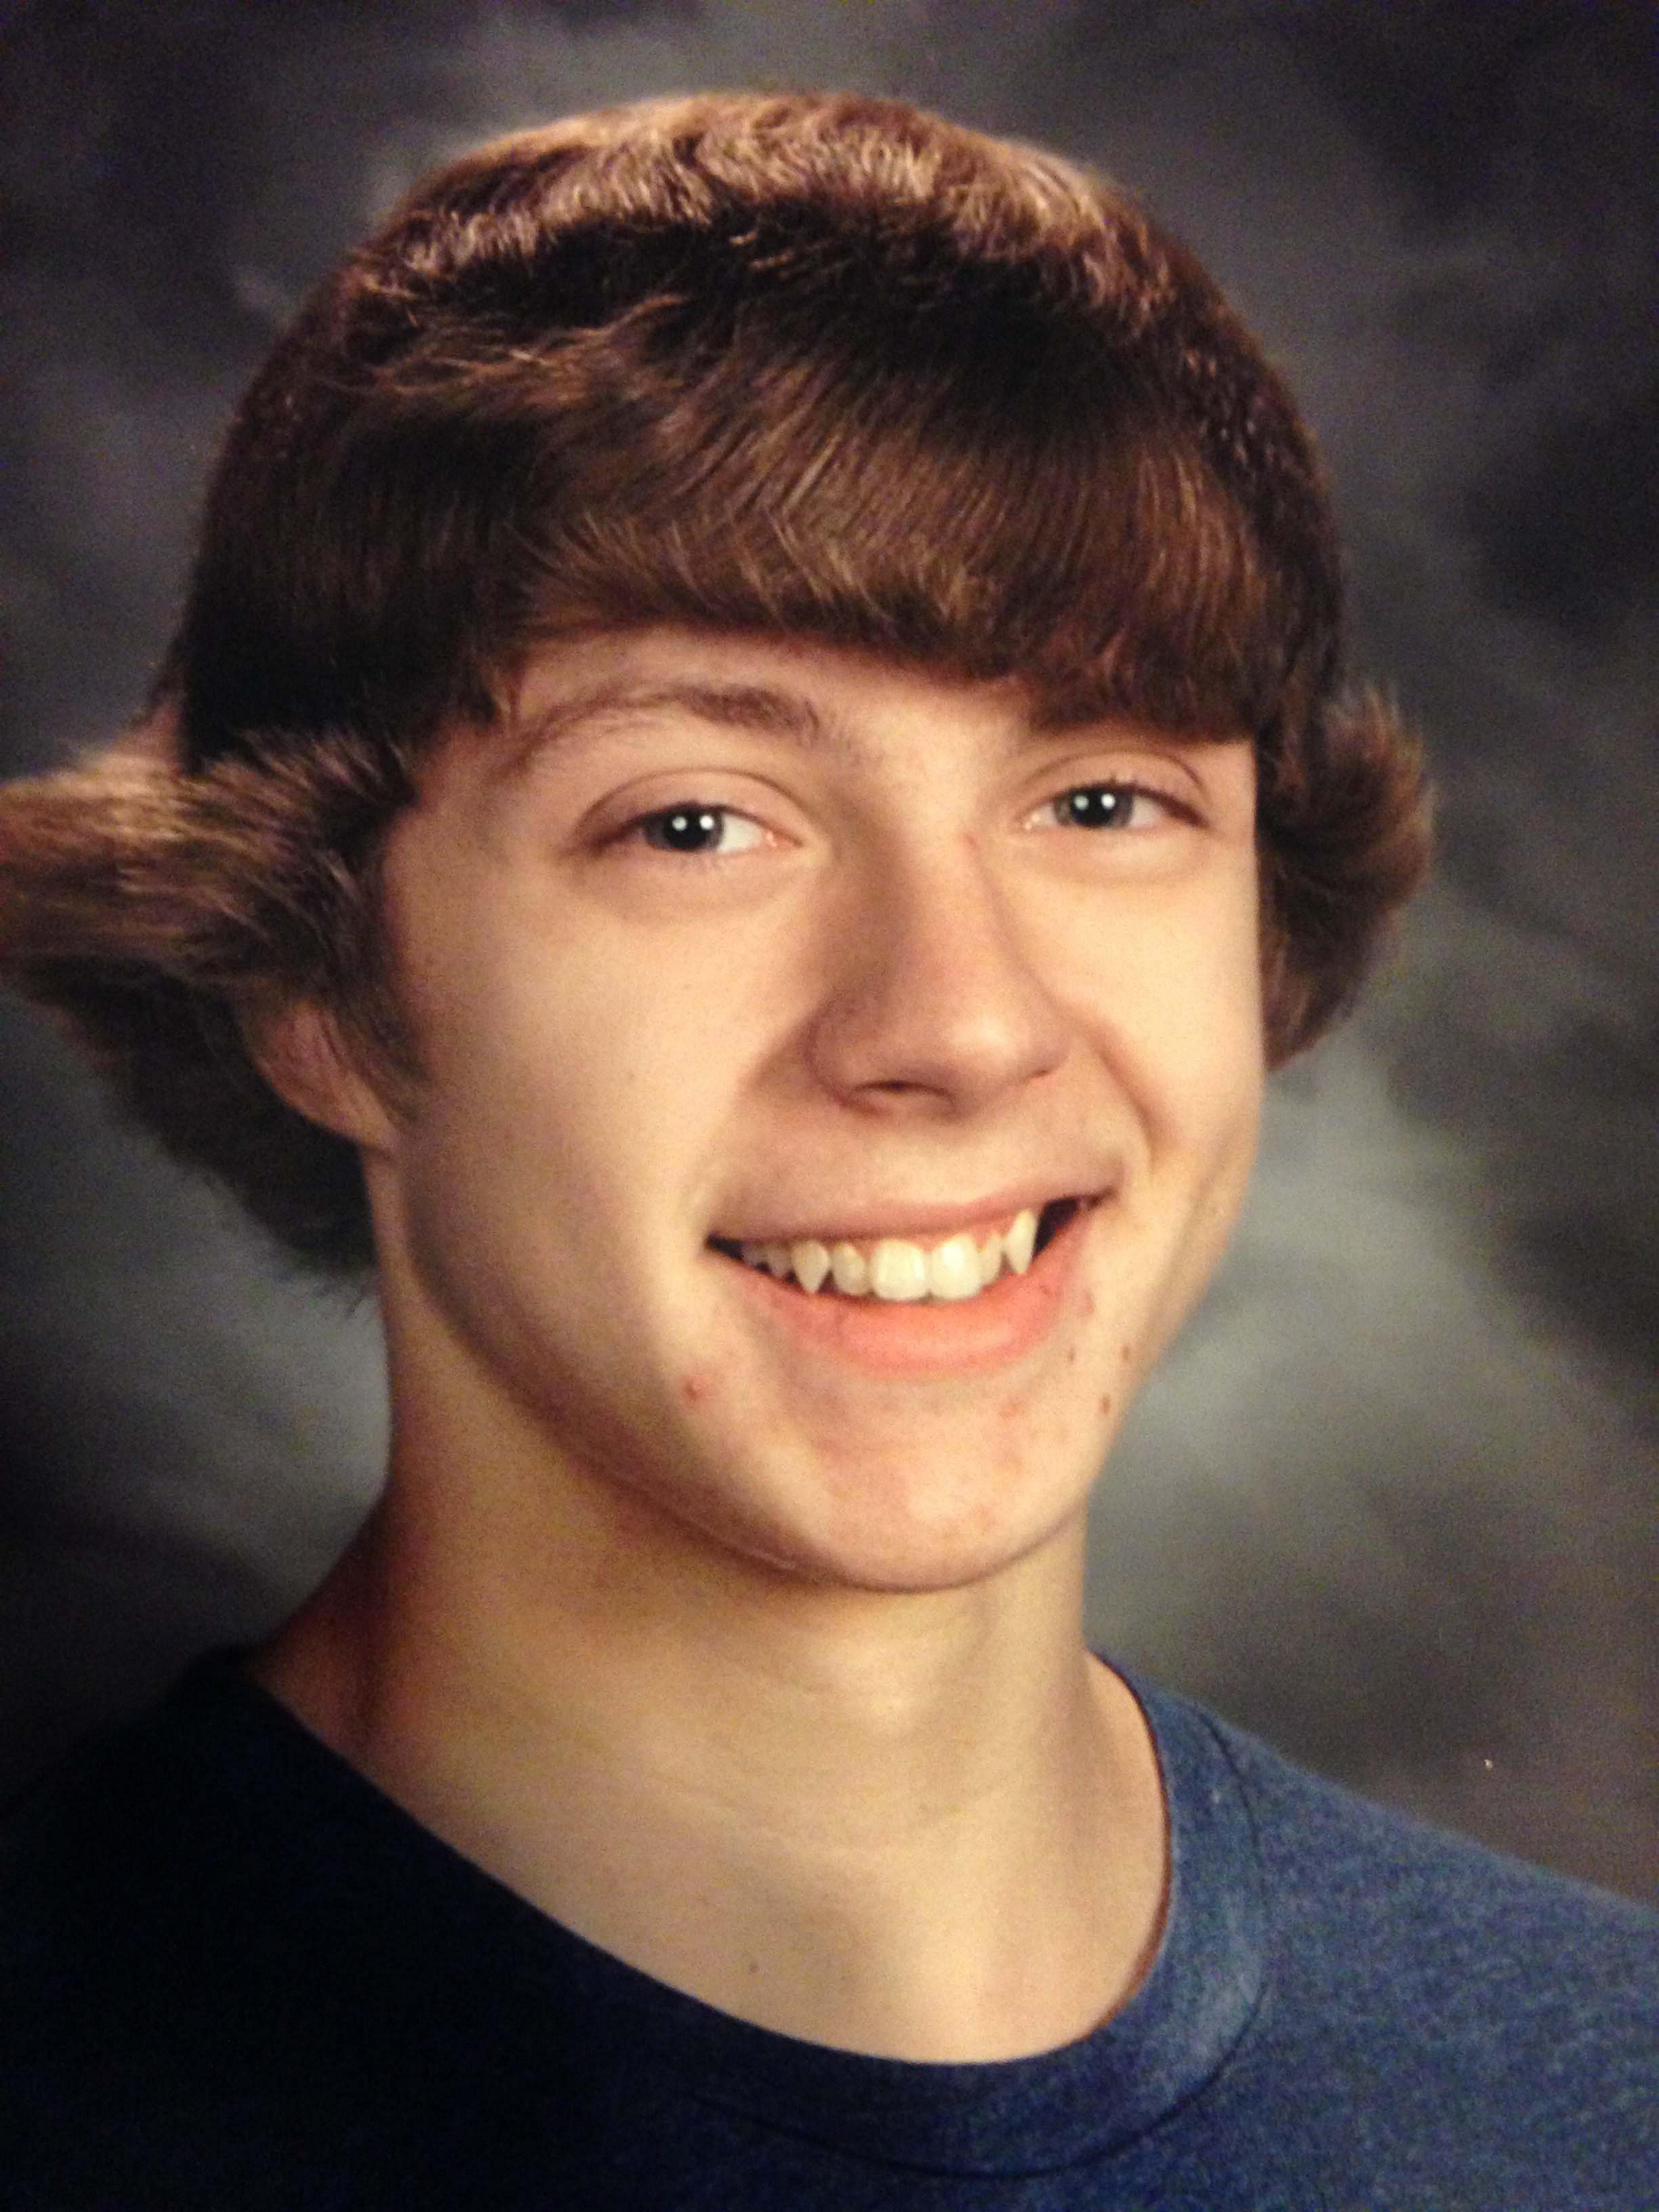 Ryan Fischer, 13, was killed in a hit-and-run accident while he was walking on Krueger Road in the Town of Wheatfield.